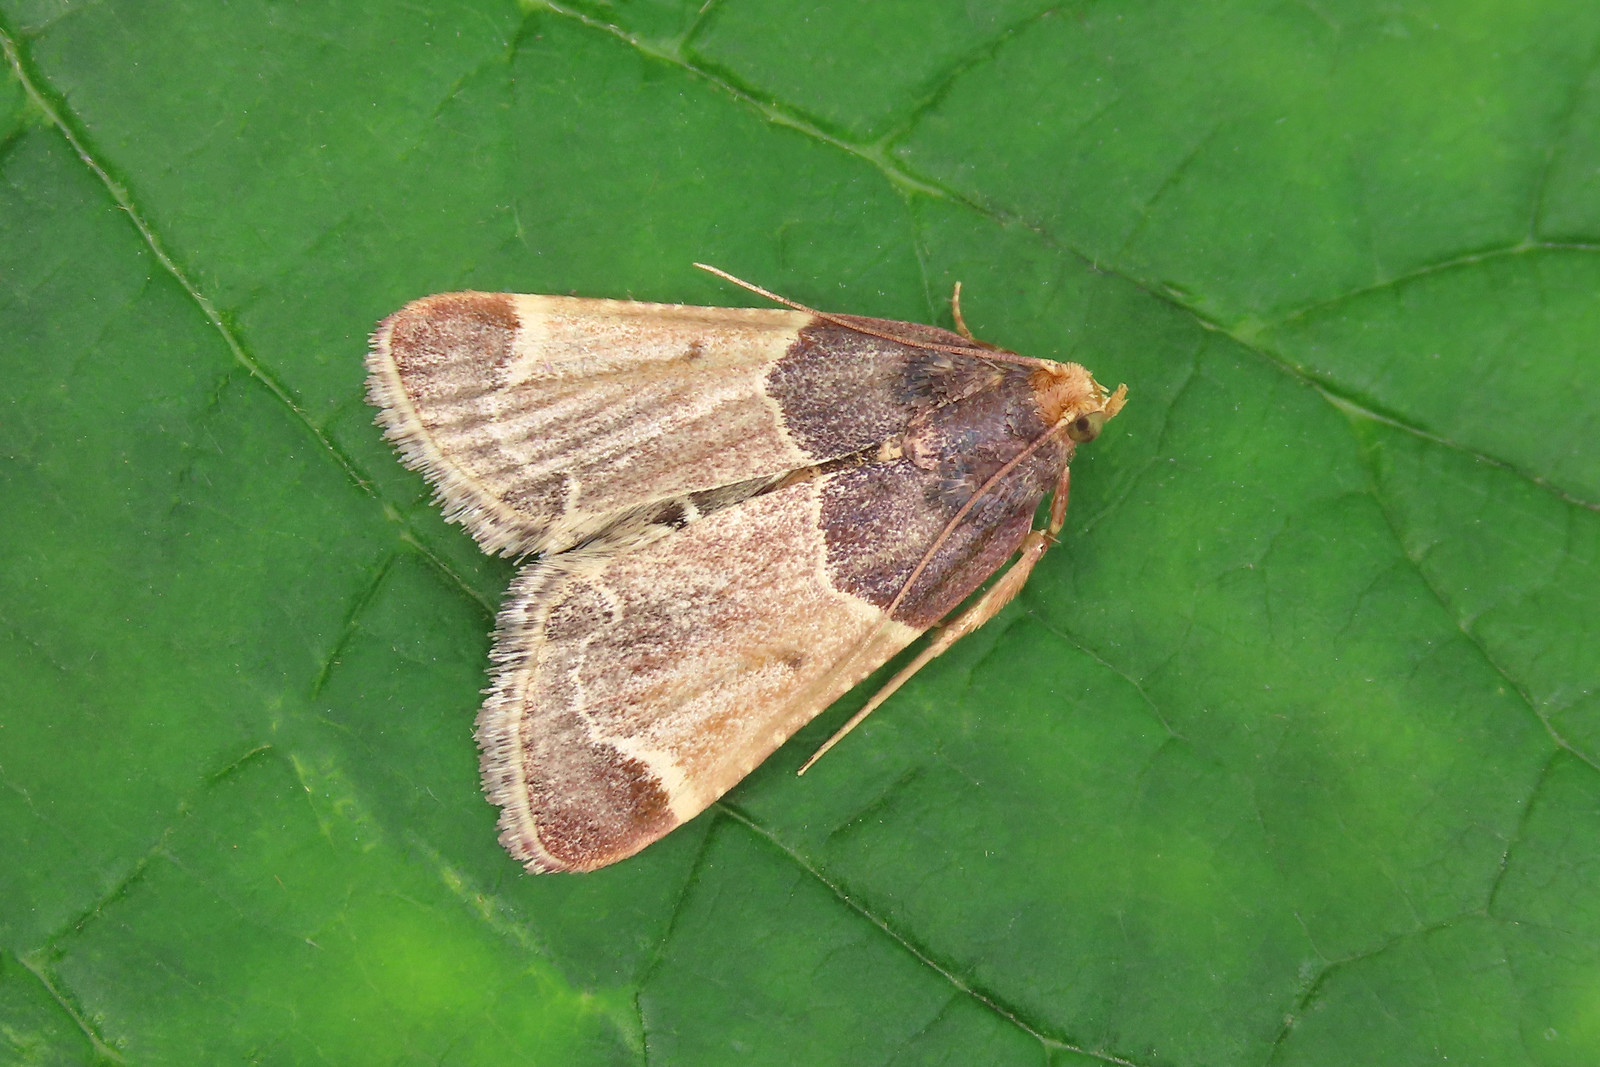 62.072 Meal Moth - Pyralis farinalis